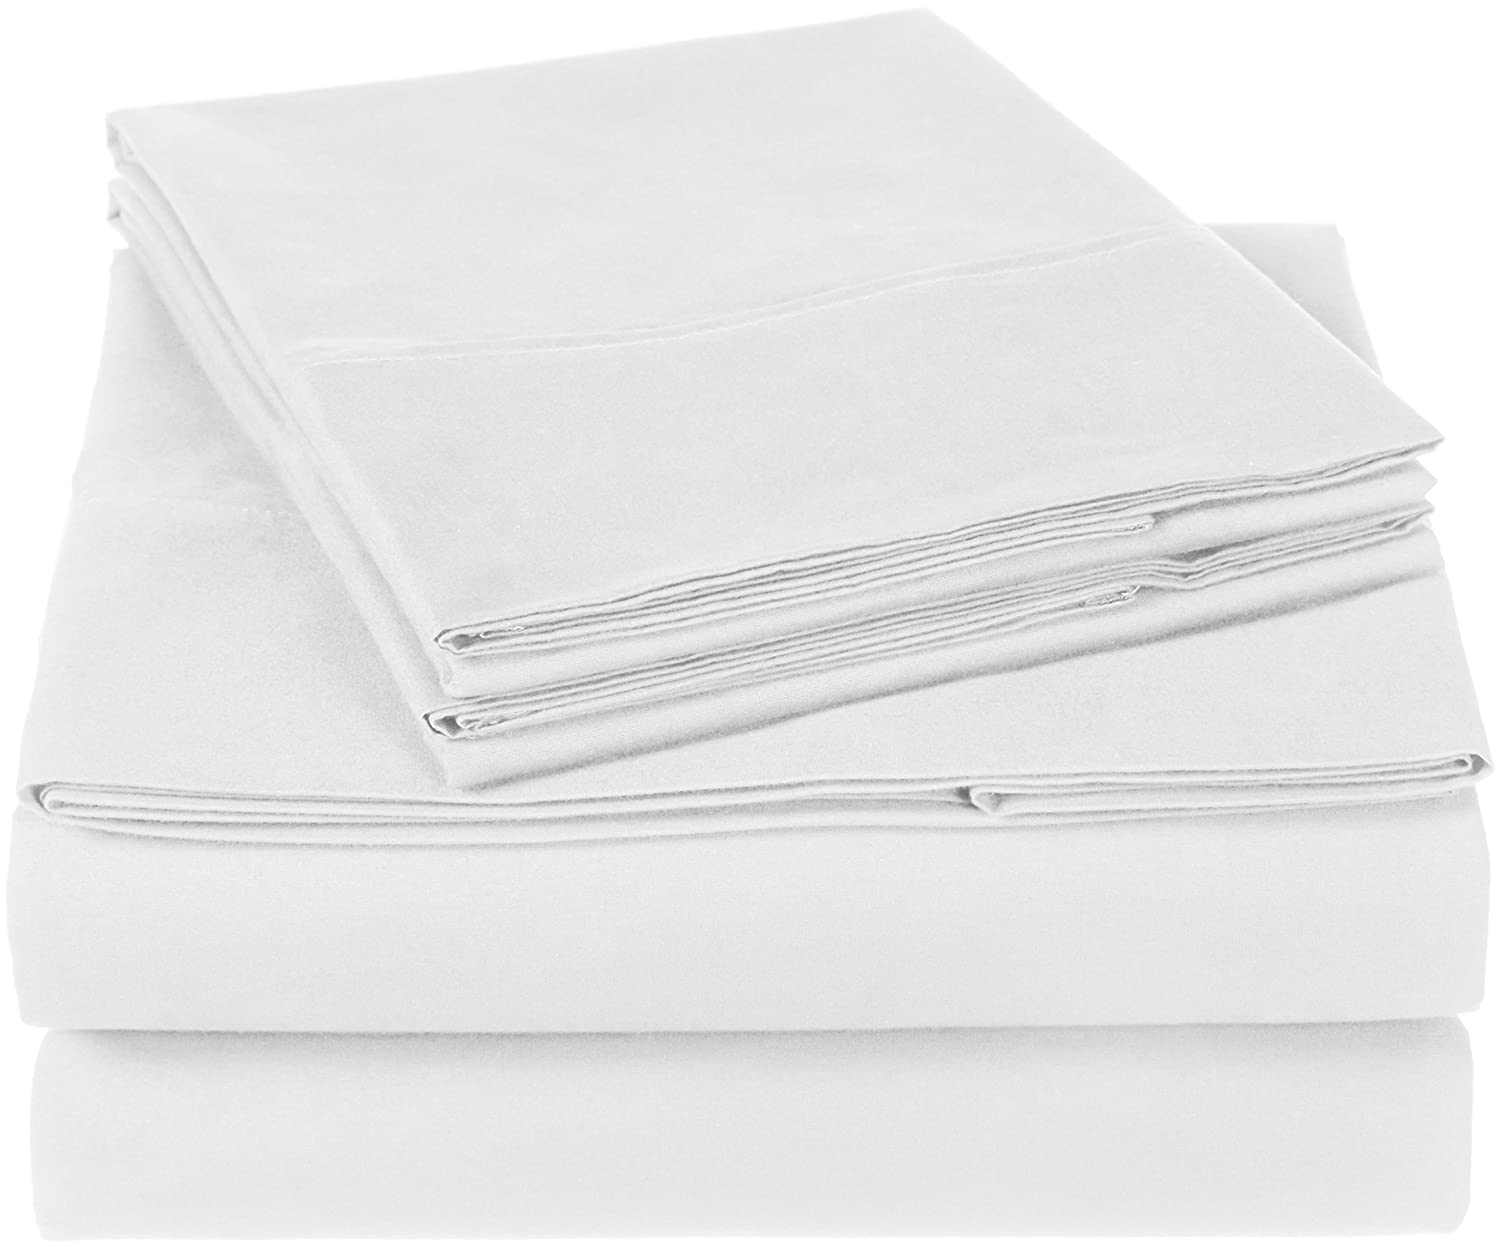 Pinzon 300 Thread Count Organic Cotton Bed Sheet Set, Queen, White bed sheets Bed Sheets Review: Best bed sheets on the market today 81bAdY5hfXL